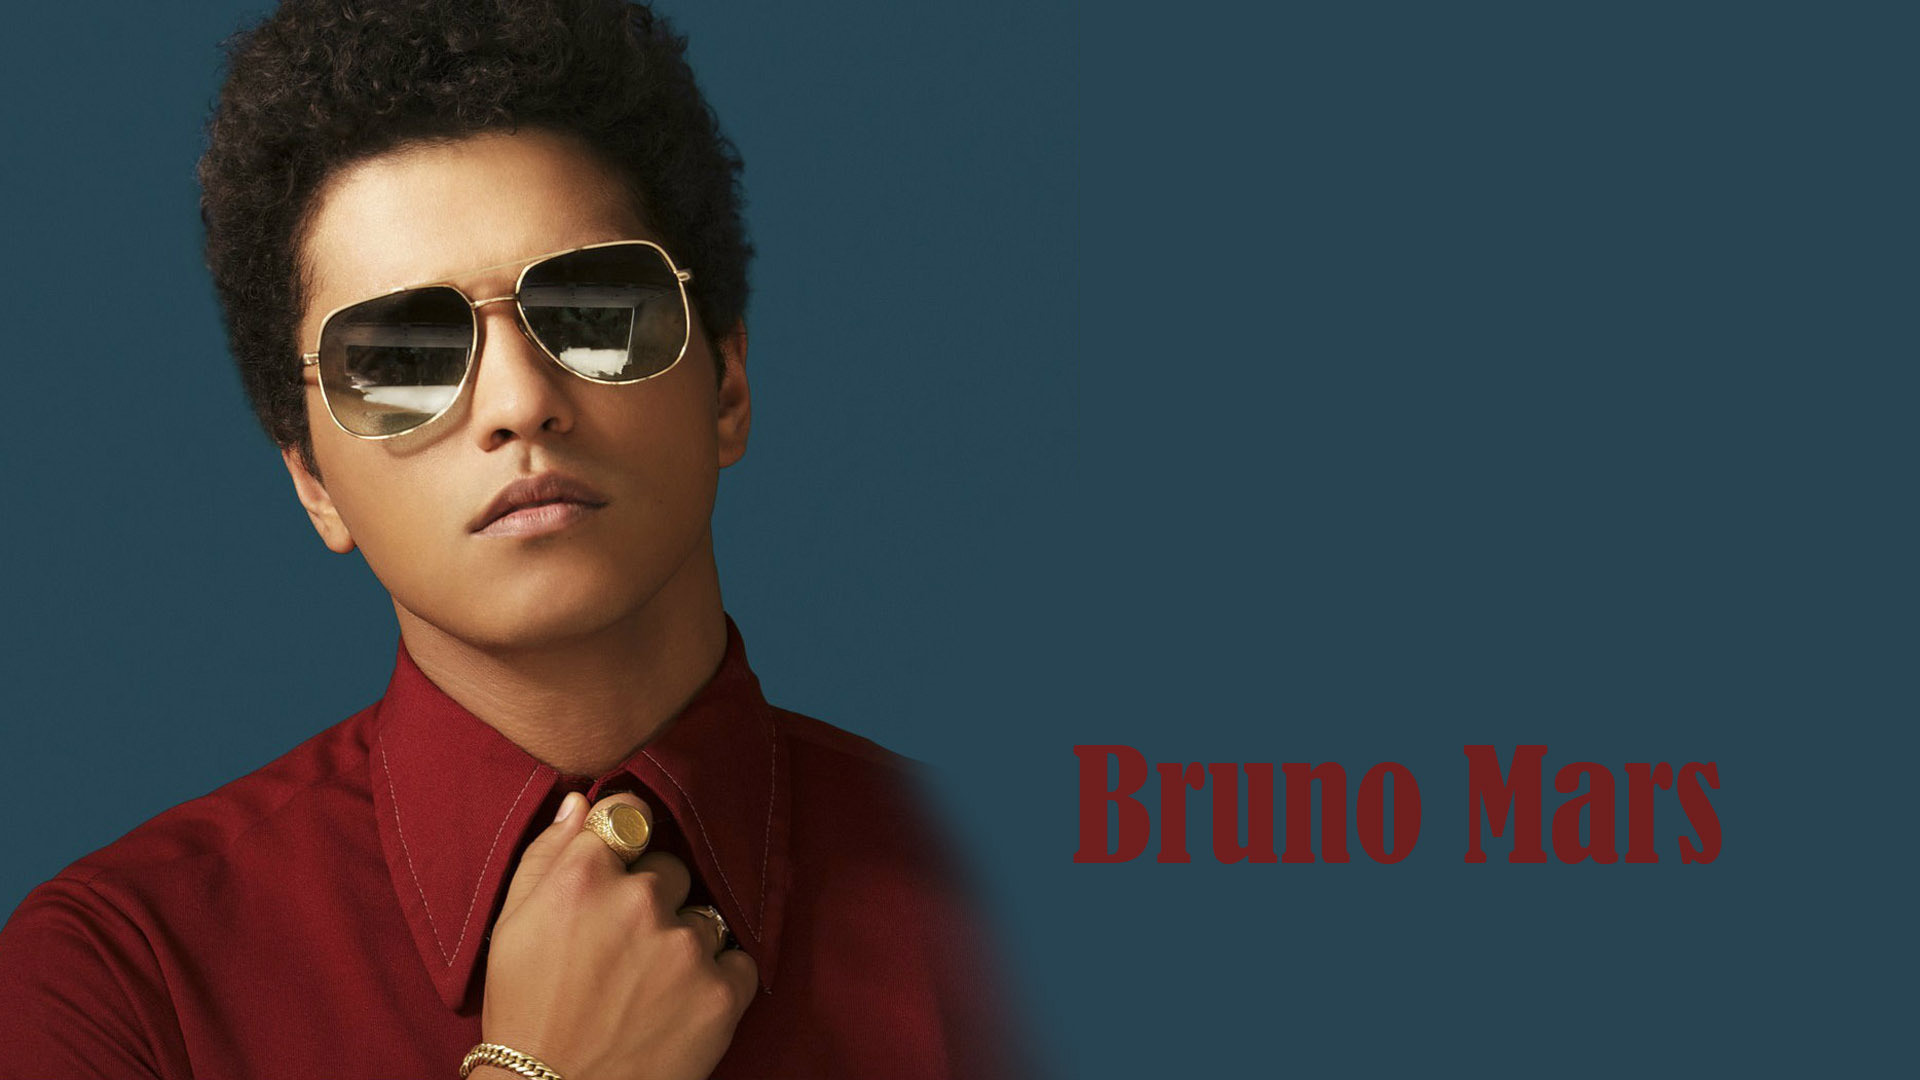 Free Computer Wallpaper Backgrounds For Fall Bruno Mars Wallpapers Hd Pixelstalk Net